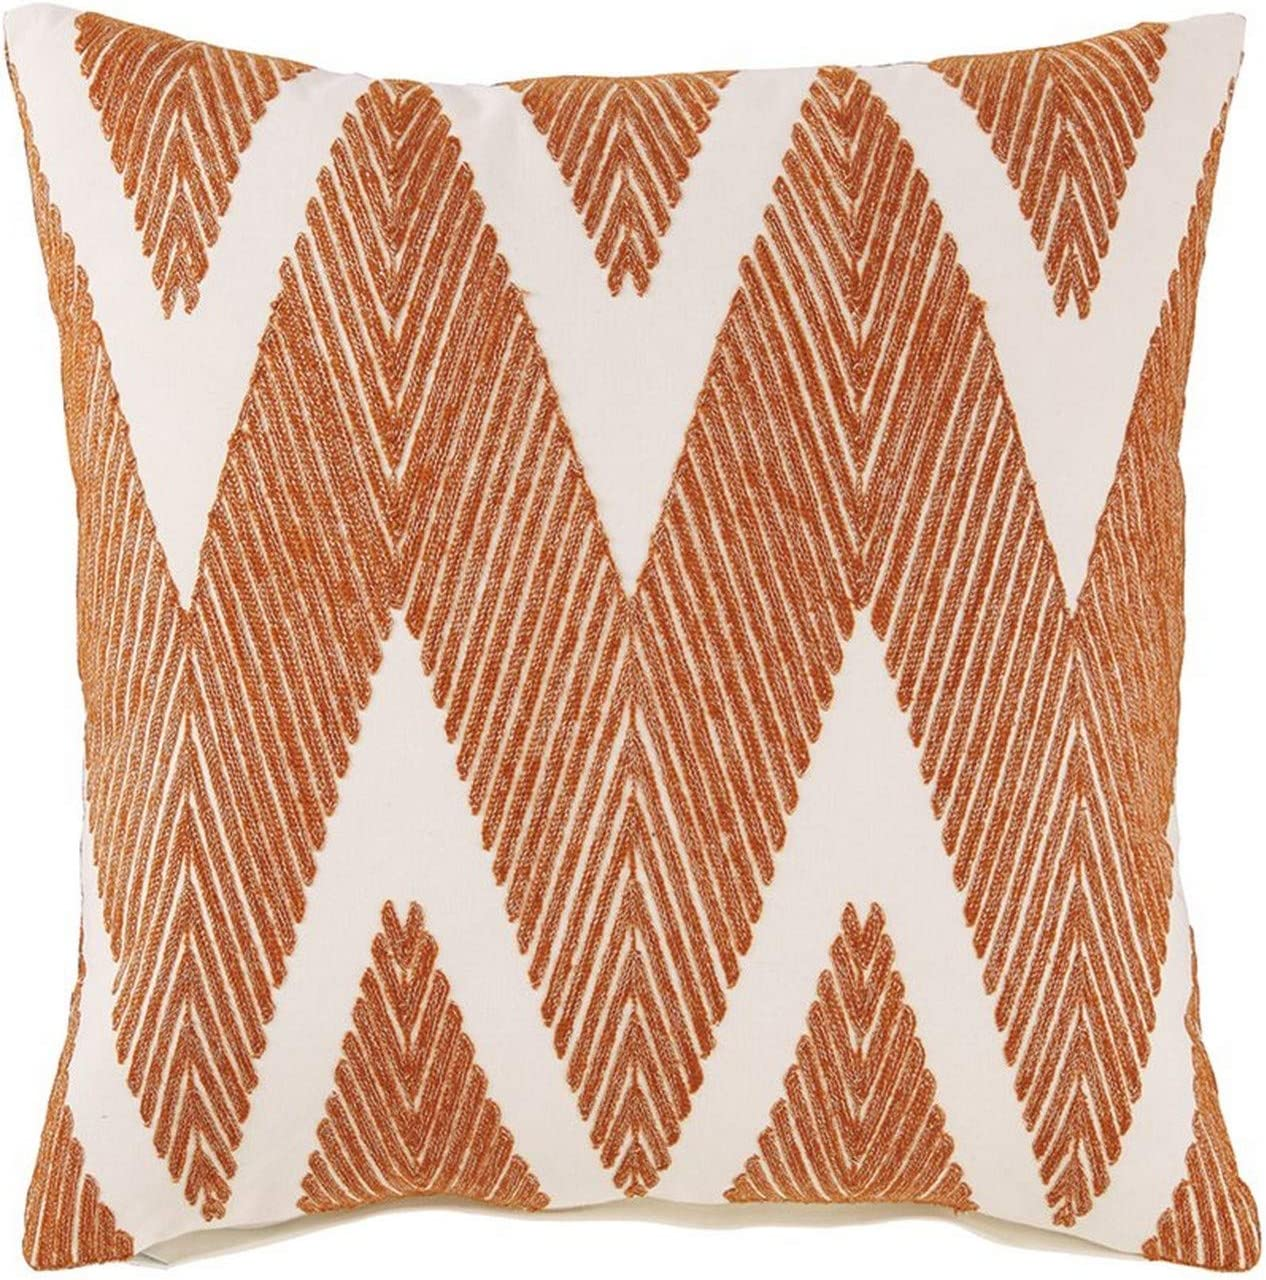 Benjara 20 x Super intense SALE Zippered Cotton Herringbone Pillow with Al sold out. P Accent